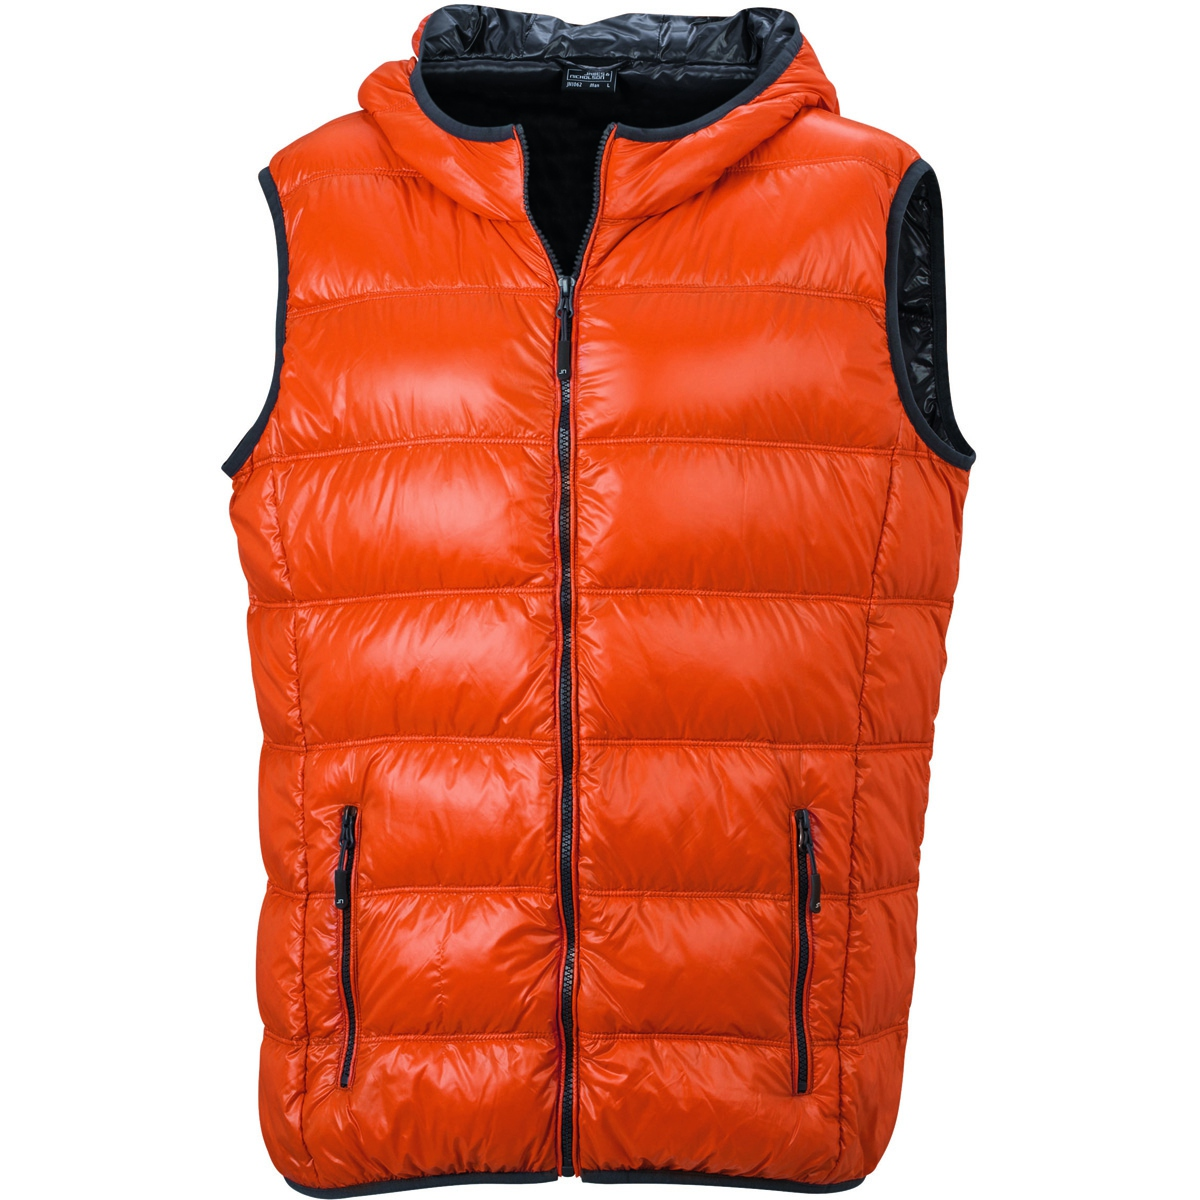 bodywarmer duvet doudoune sans manches anorak homme jn1062 orange. Black Bedroom Furniture Sets. Home Design Ideas